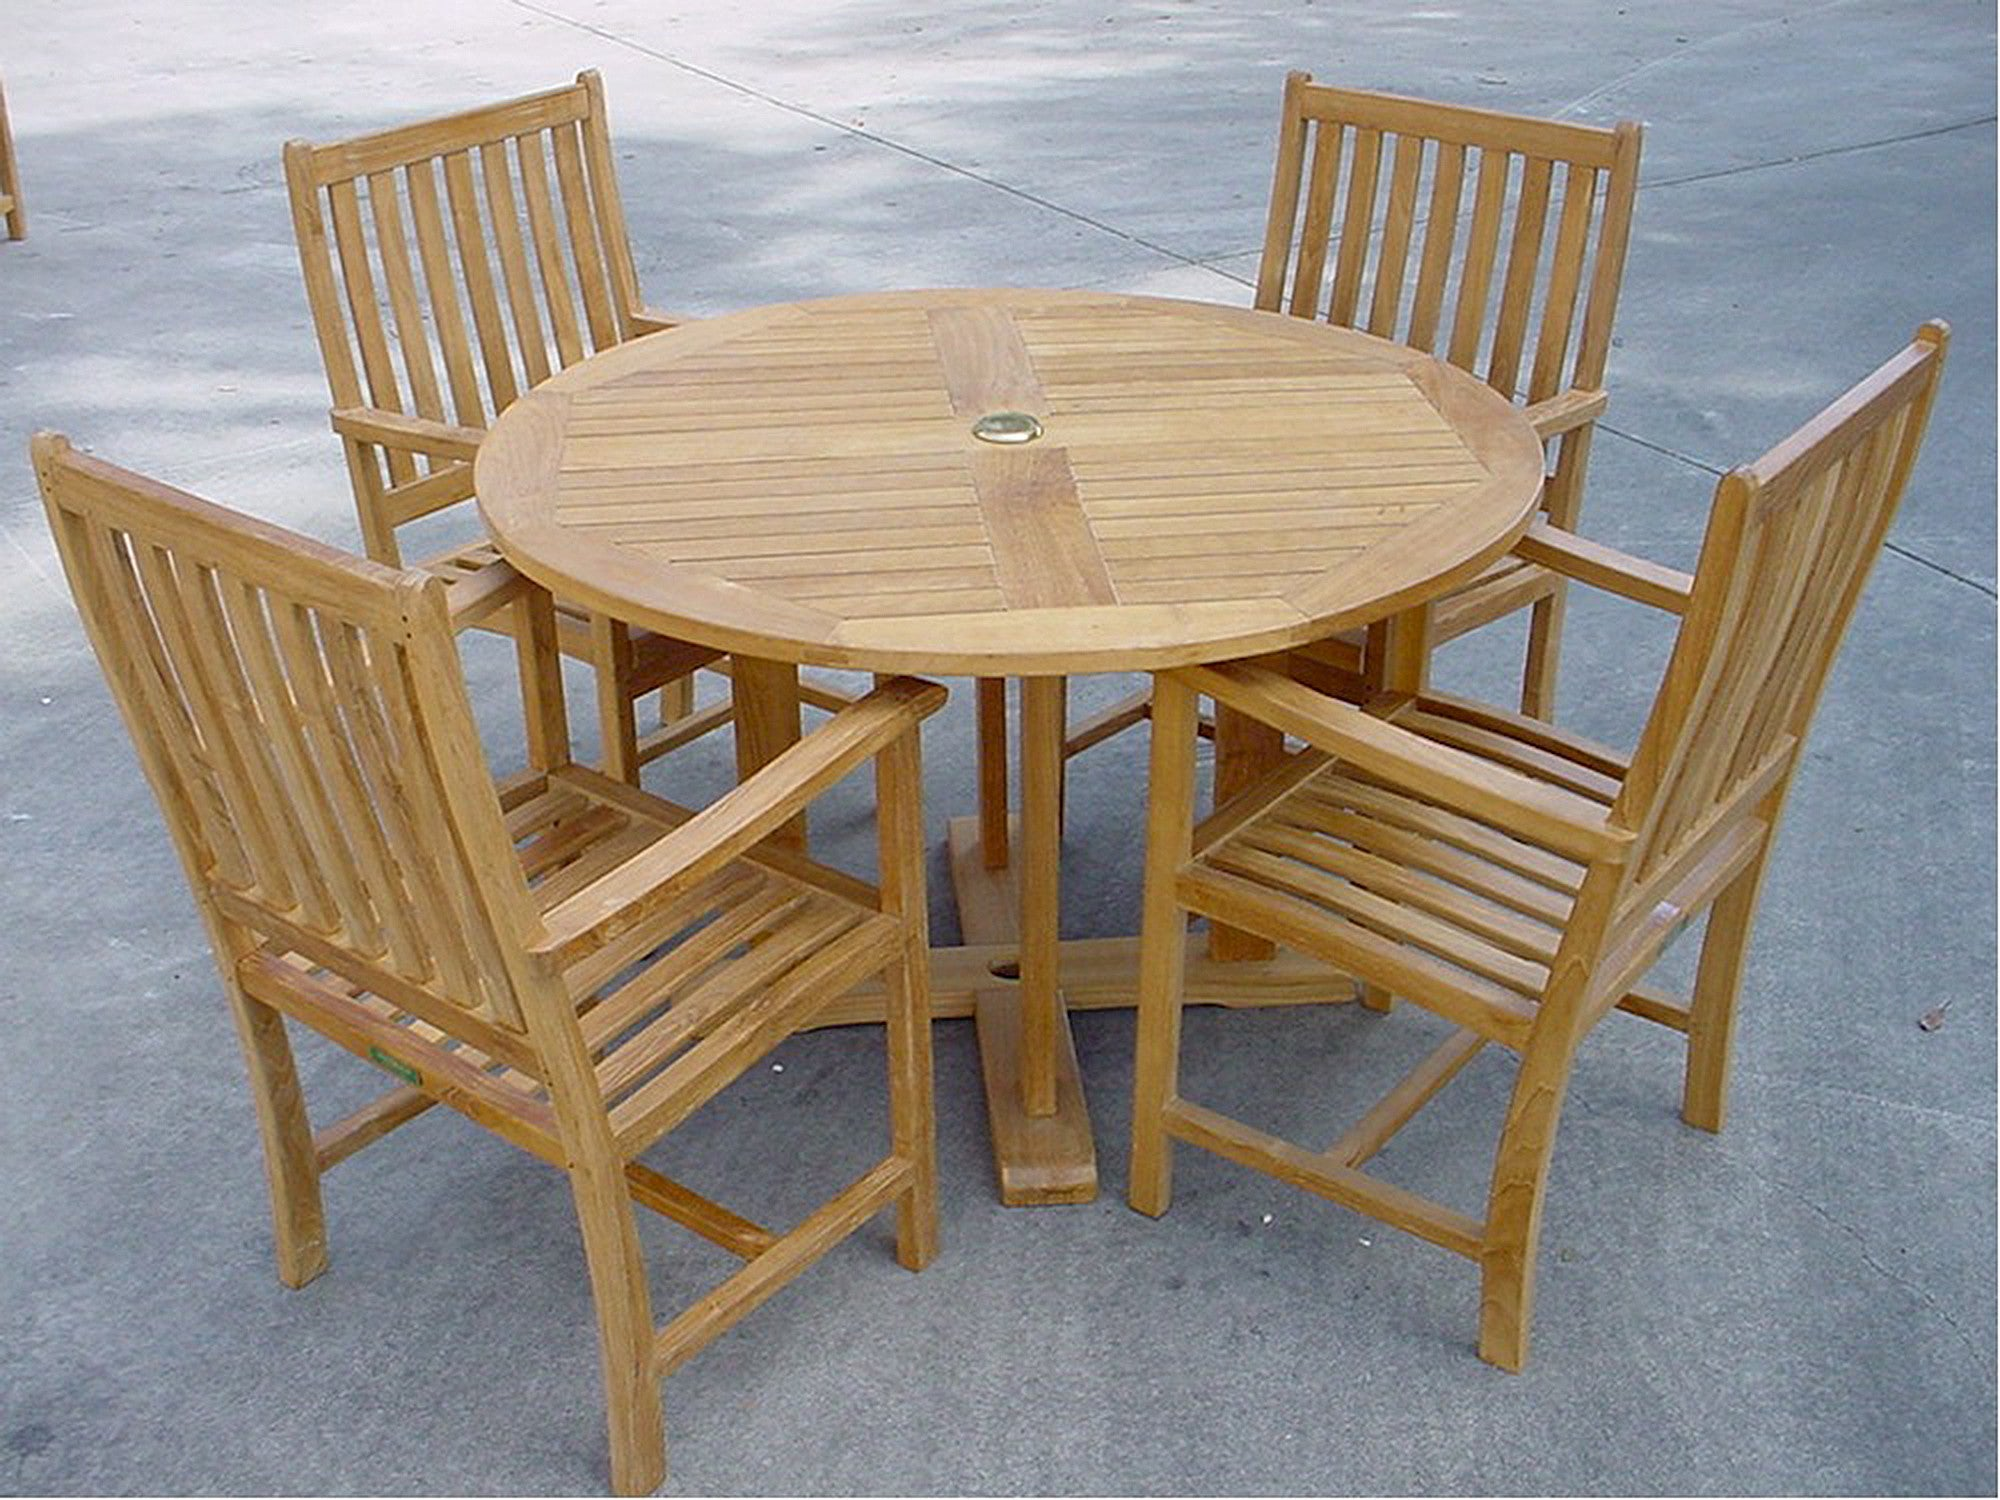 Round Table Patio Dining Sets.Anderson Teak 5 Piece Round Table Teak Patio Dining Set Set 16